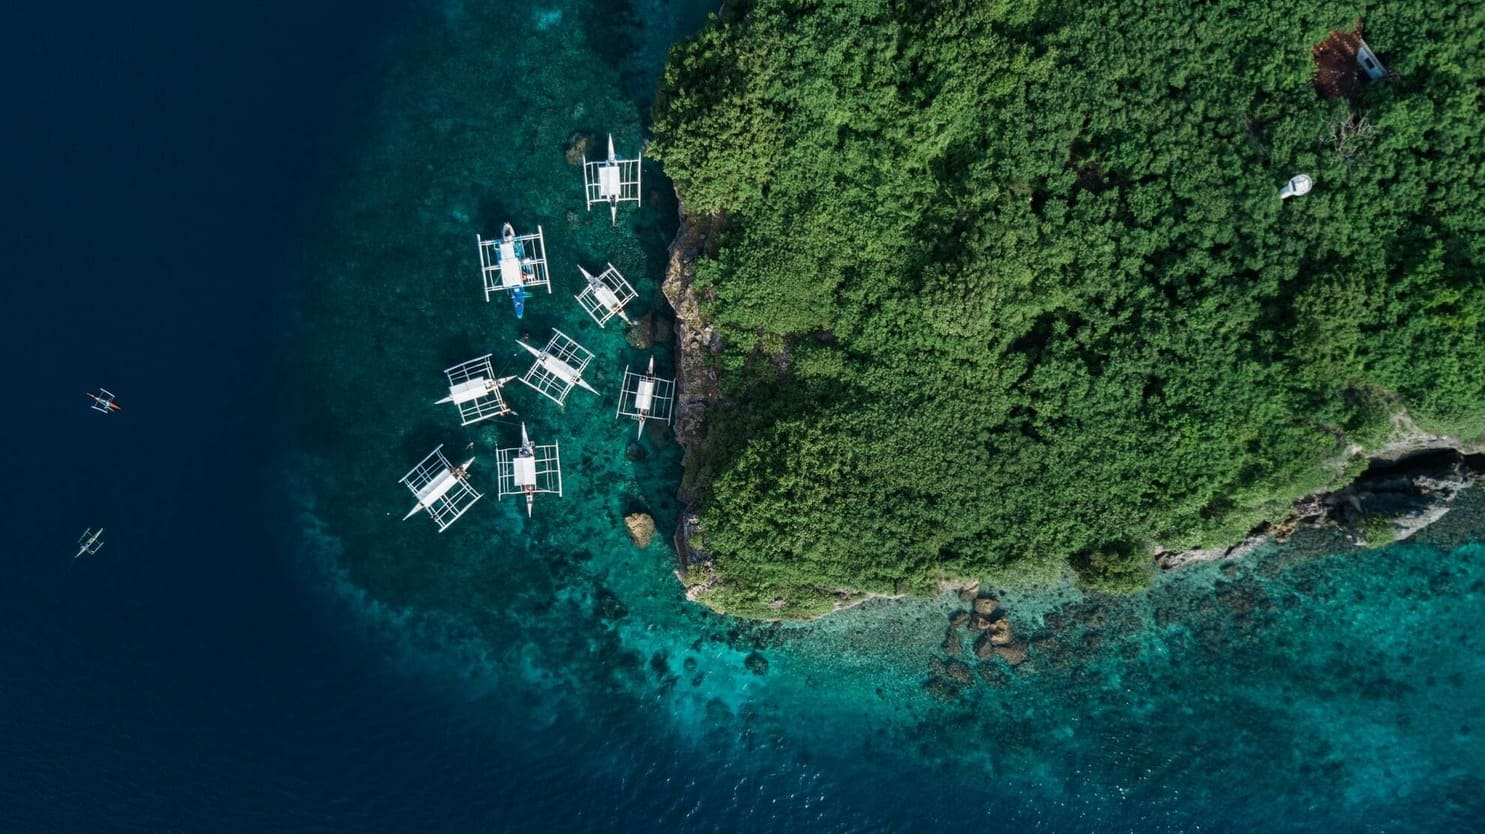 A drone photo from Pescador Island, the Philippines